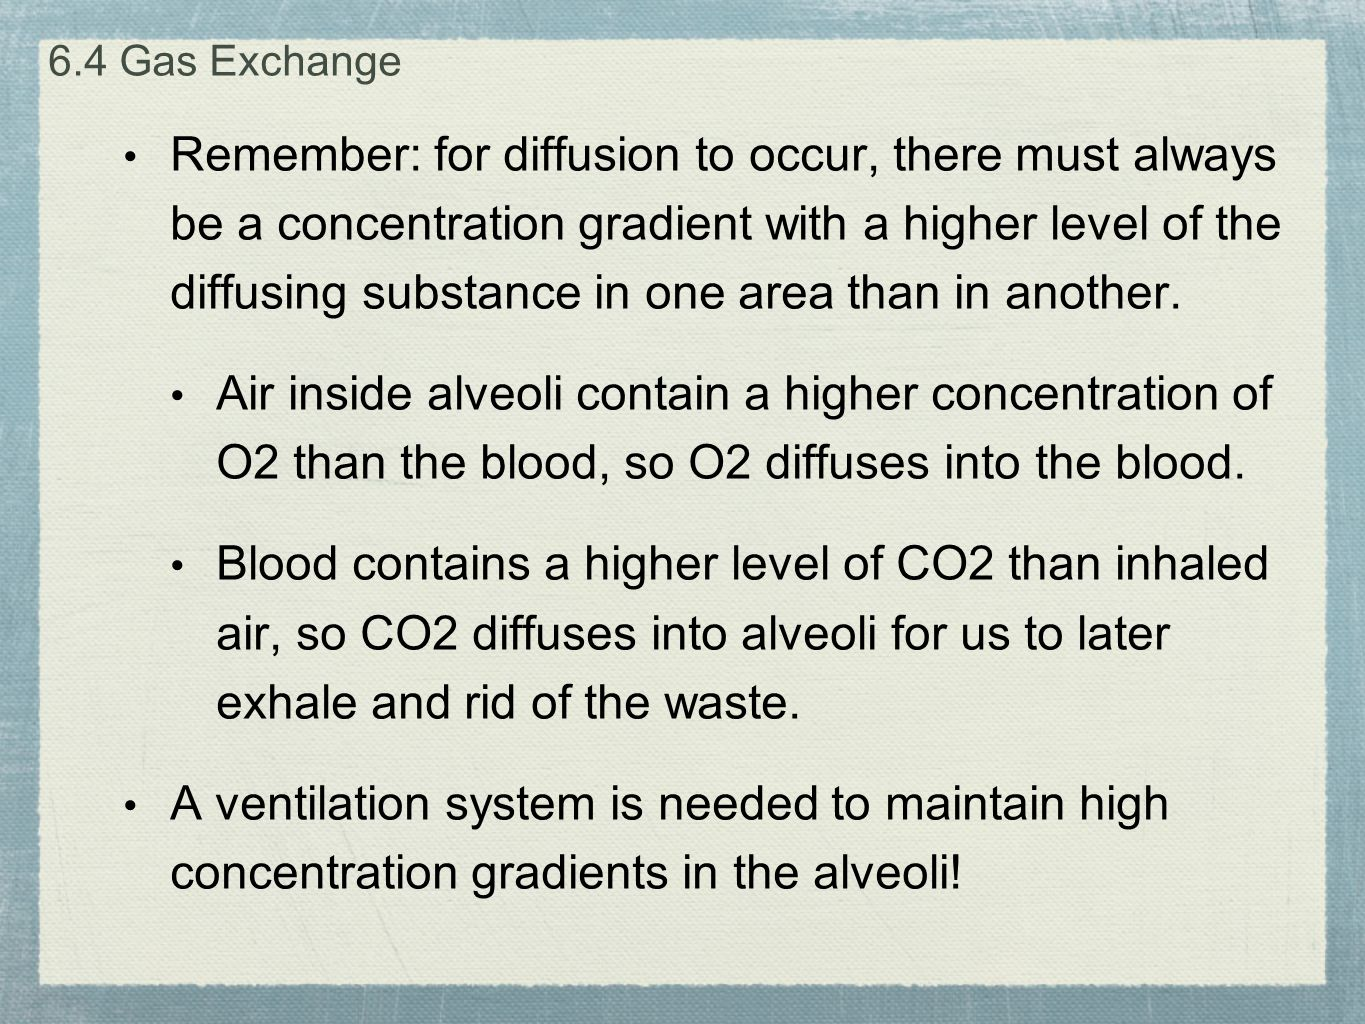 Remember: for diffusion to occur, there must always be a concentration gradient with a higher level of the diffusing substance in one area than in ano